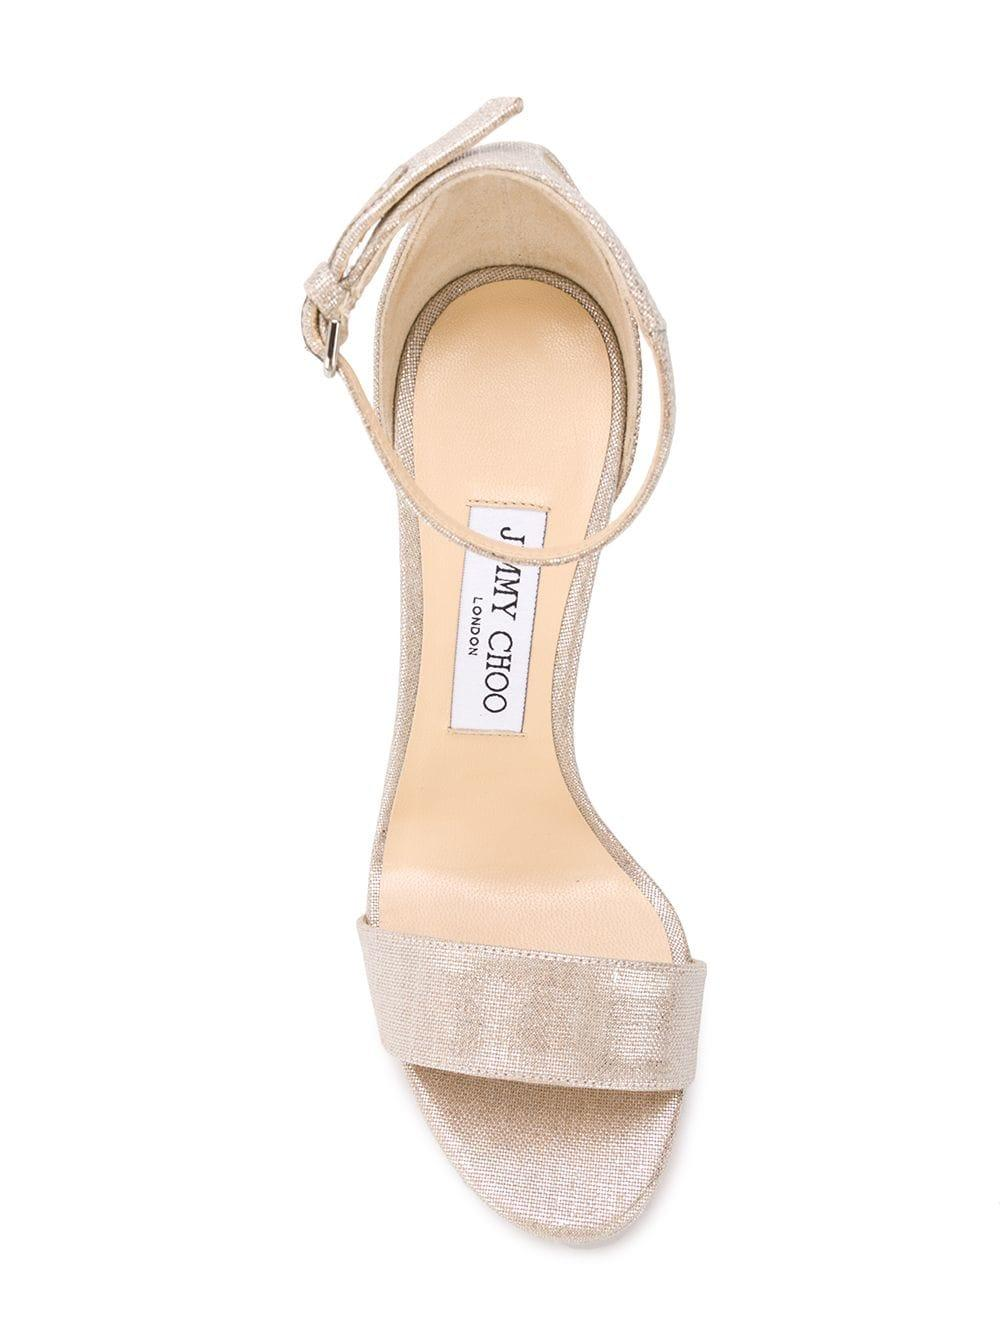 52caa06d919 Jimmy Choo - Metallic Misty 120 Sandals - Lyst. View fullscreen